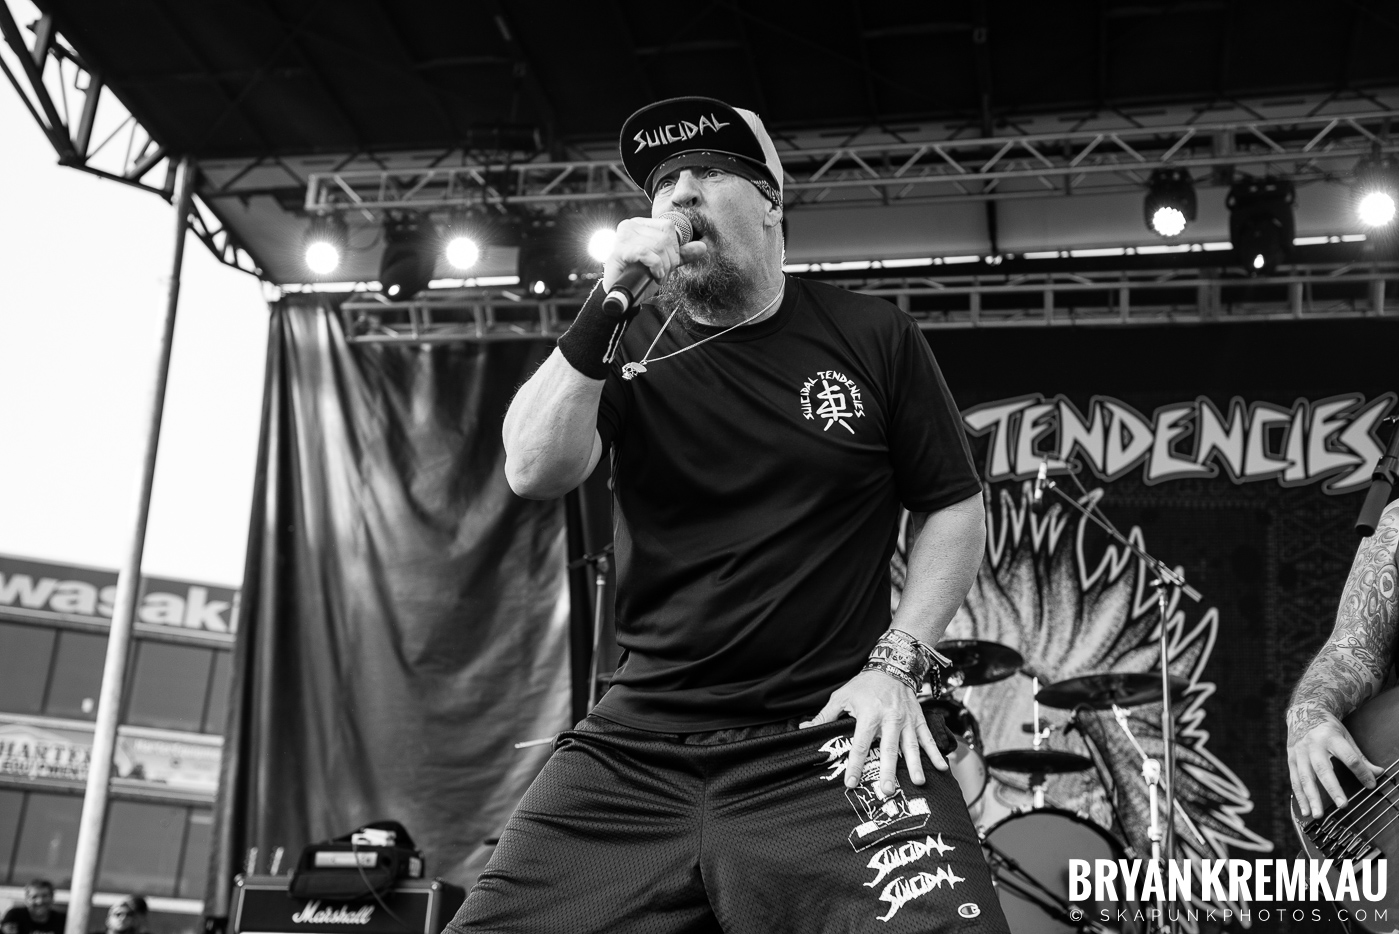 Suicidal Tendencies @ The Bash Music & Craft Beer Festival, Old Bridge Township Raceway Park, Englishtown, NJ - 6.2.19 (37)